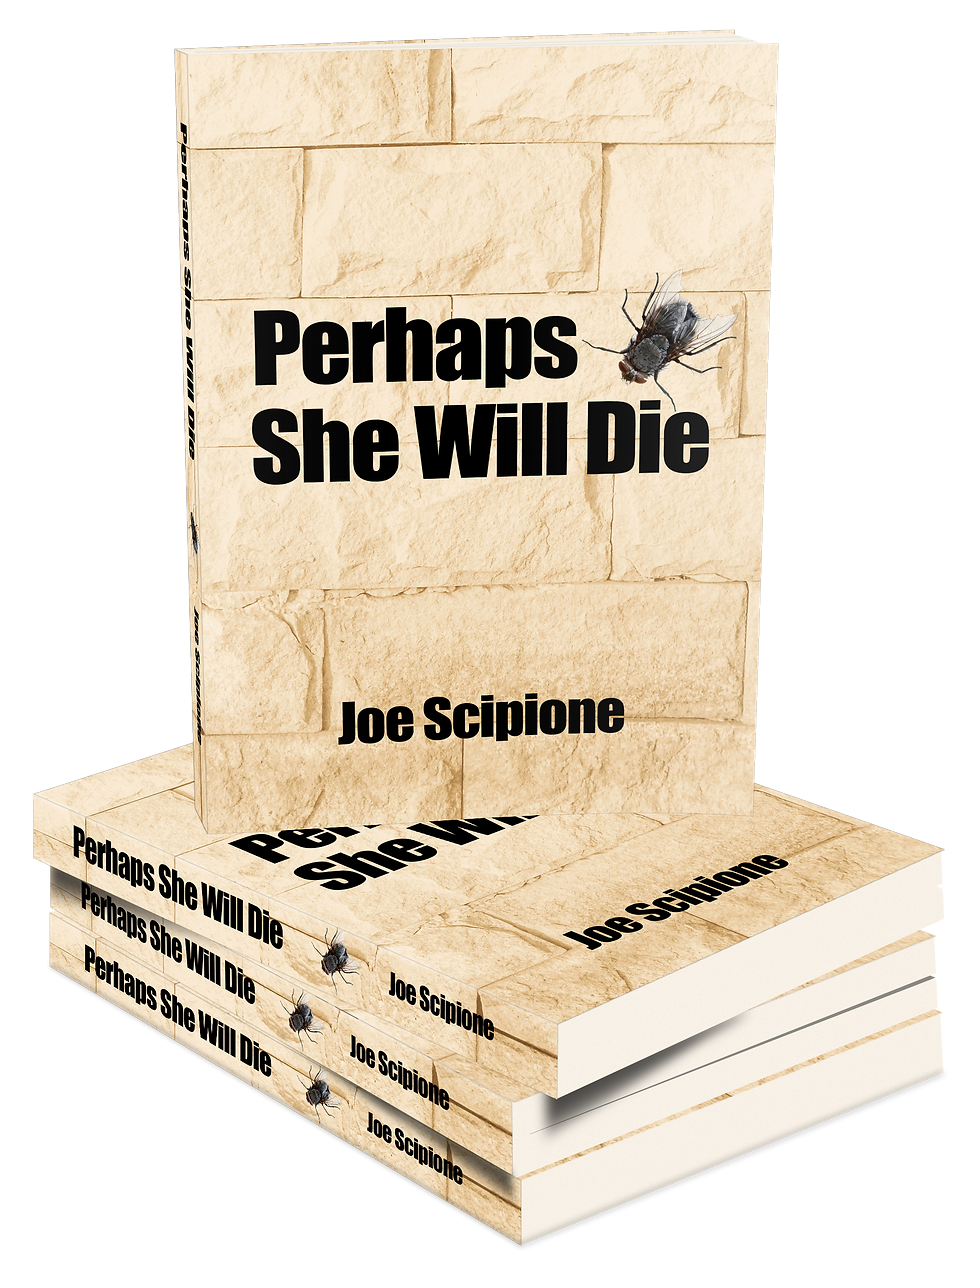 Perhaps She Will Die 3D Book Stack.png